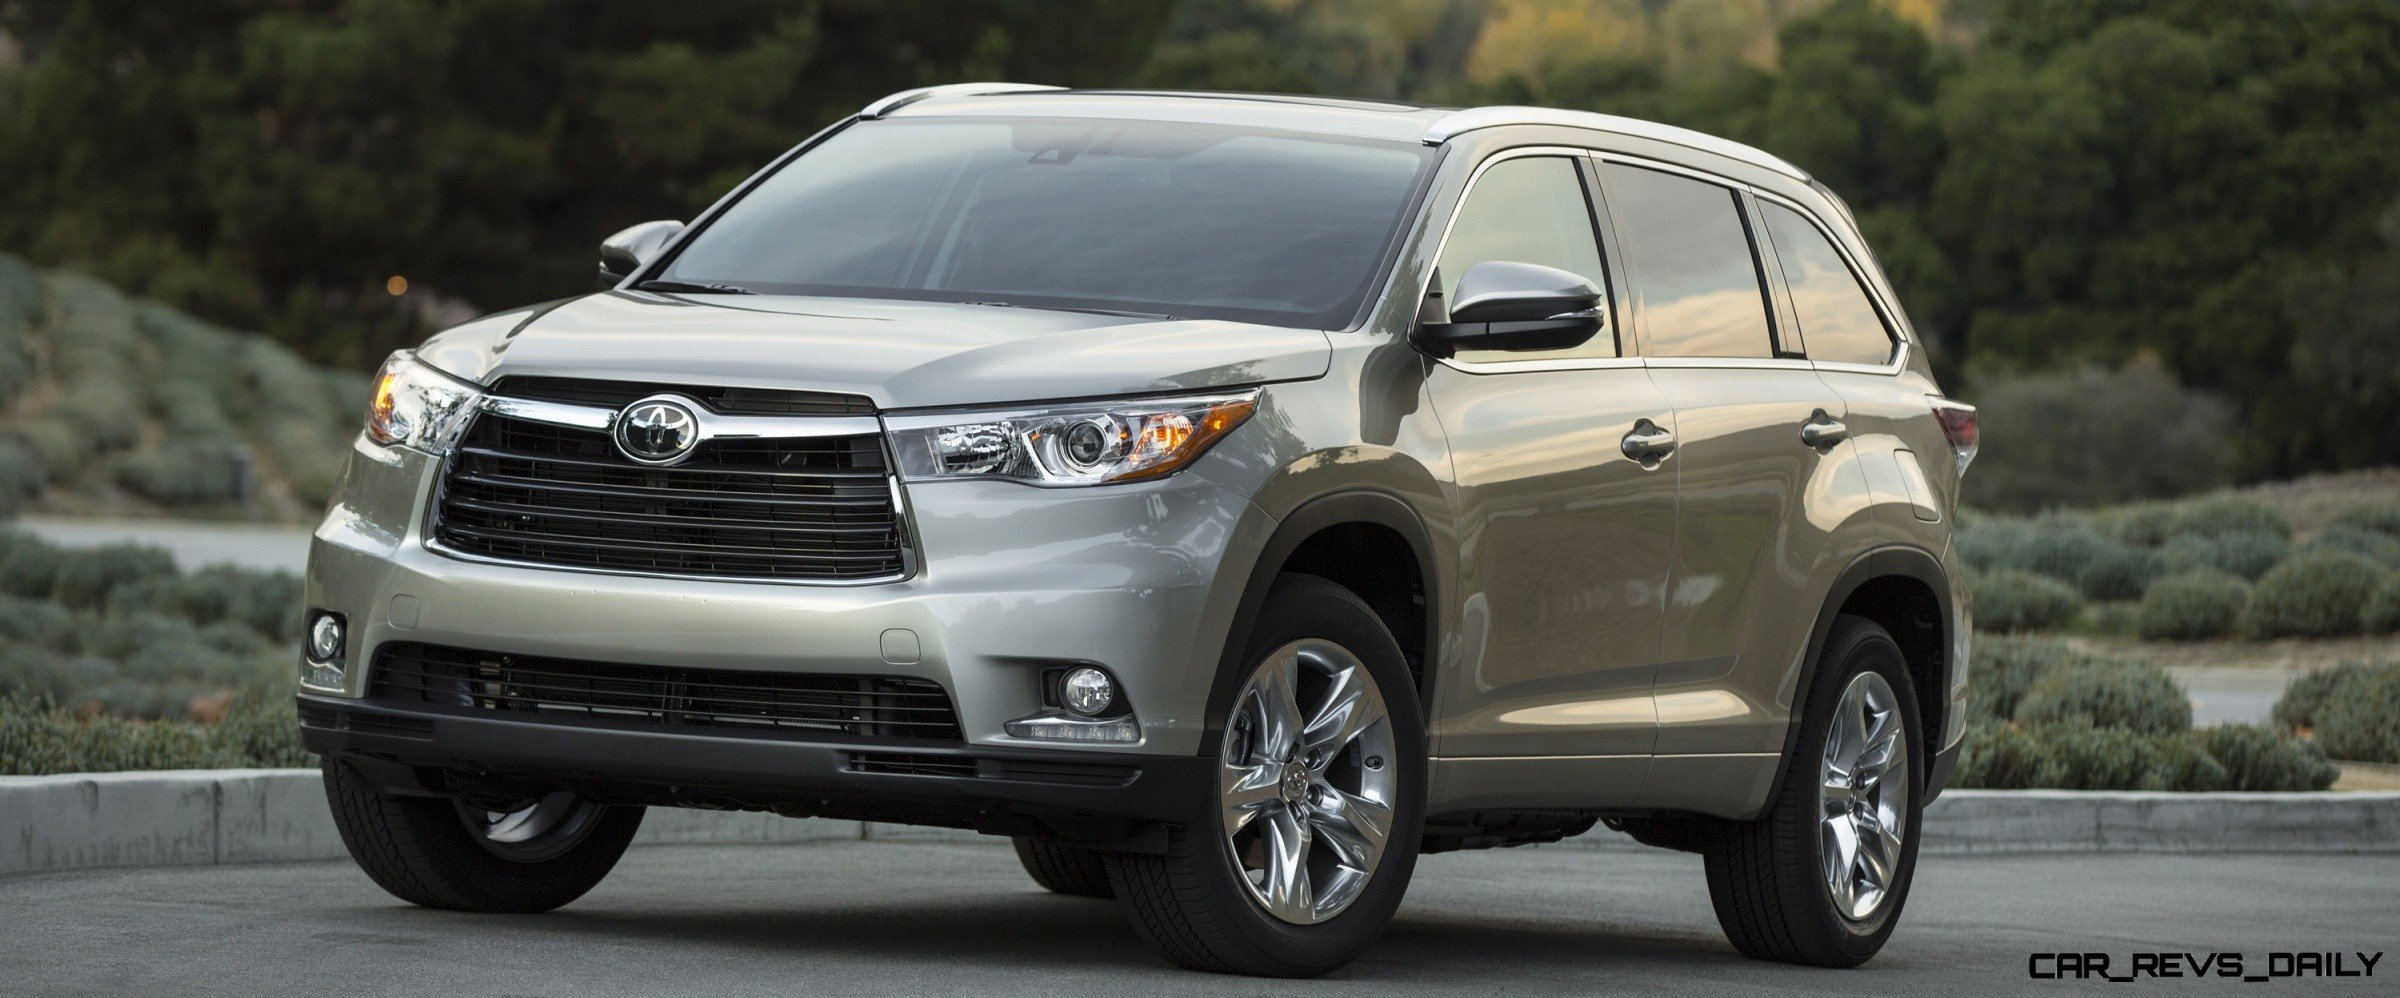 2014 toyota highlander features review release date price and specs. Black Bedroom Furniture Sets. Home Design Ideas